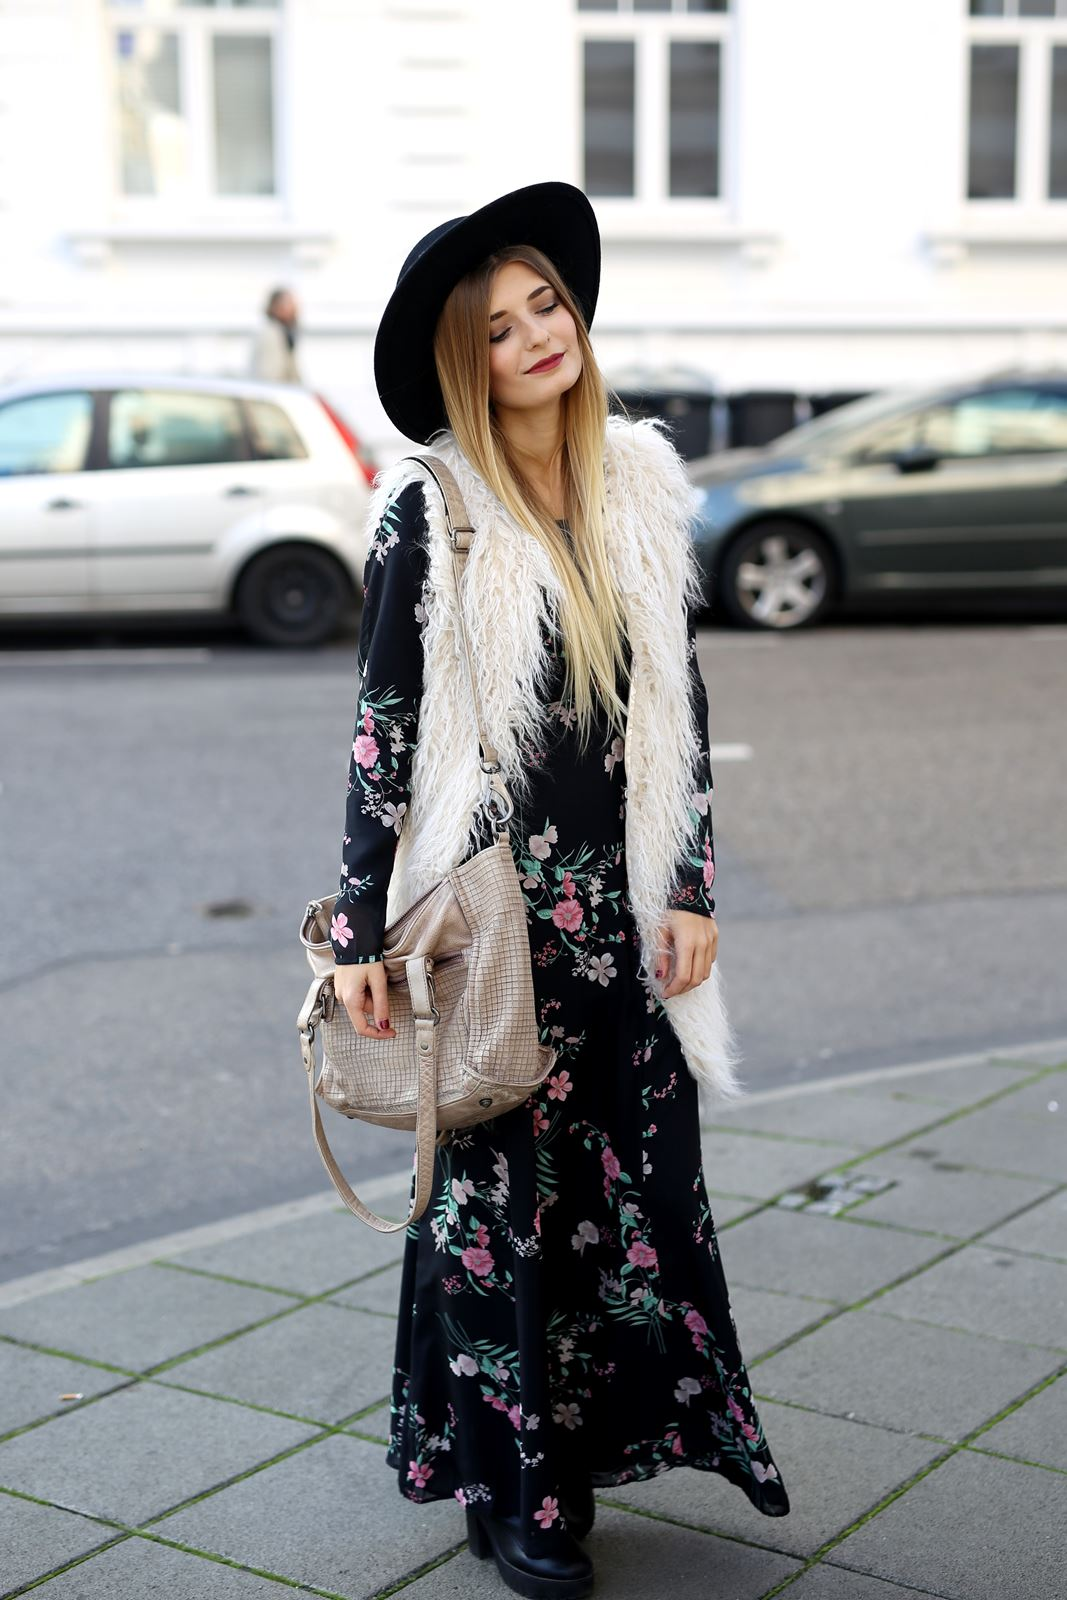 modeblog-fashion-blog-outfit-herbst-fake-fur-maxi-kleid-3